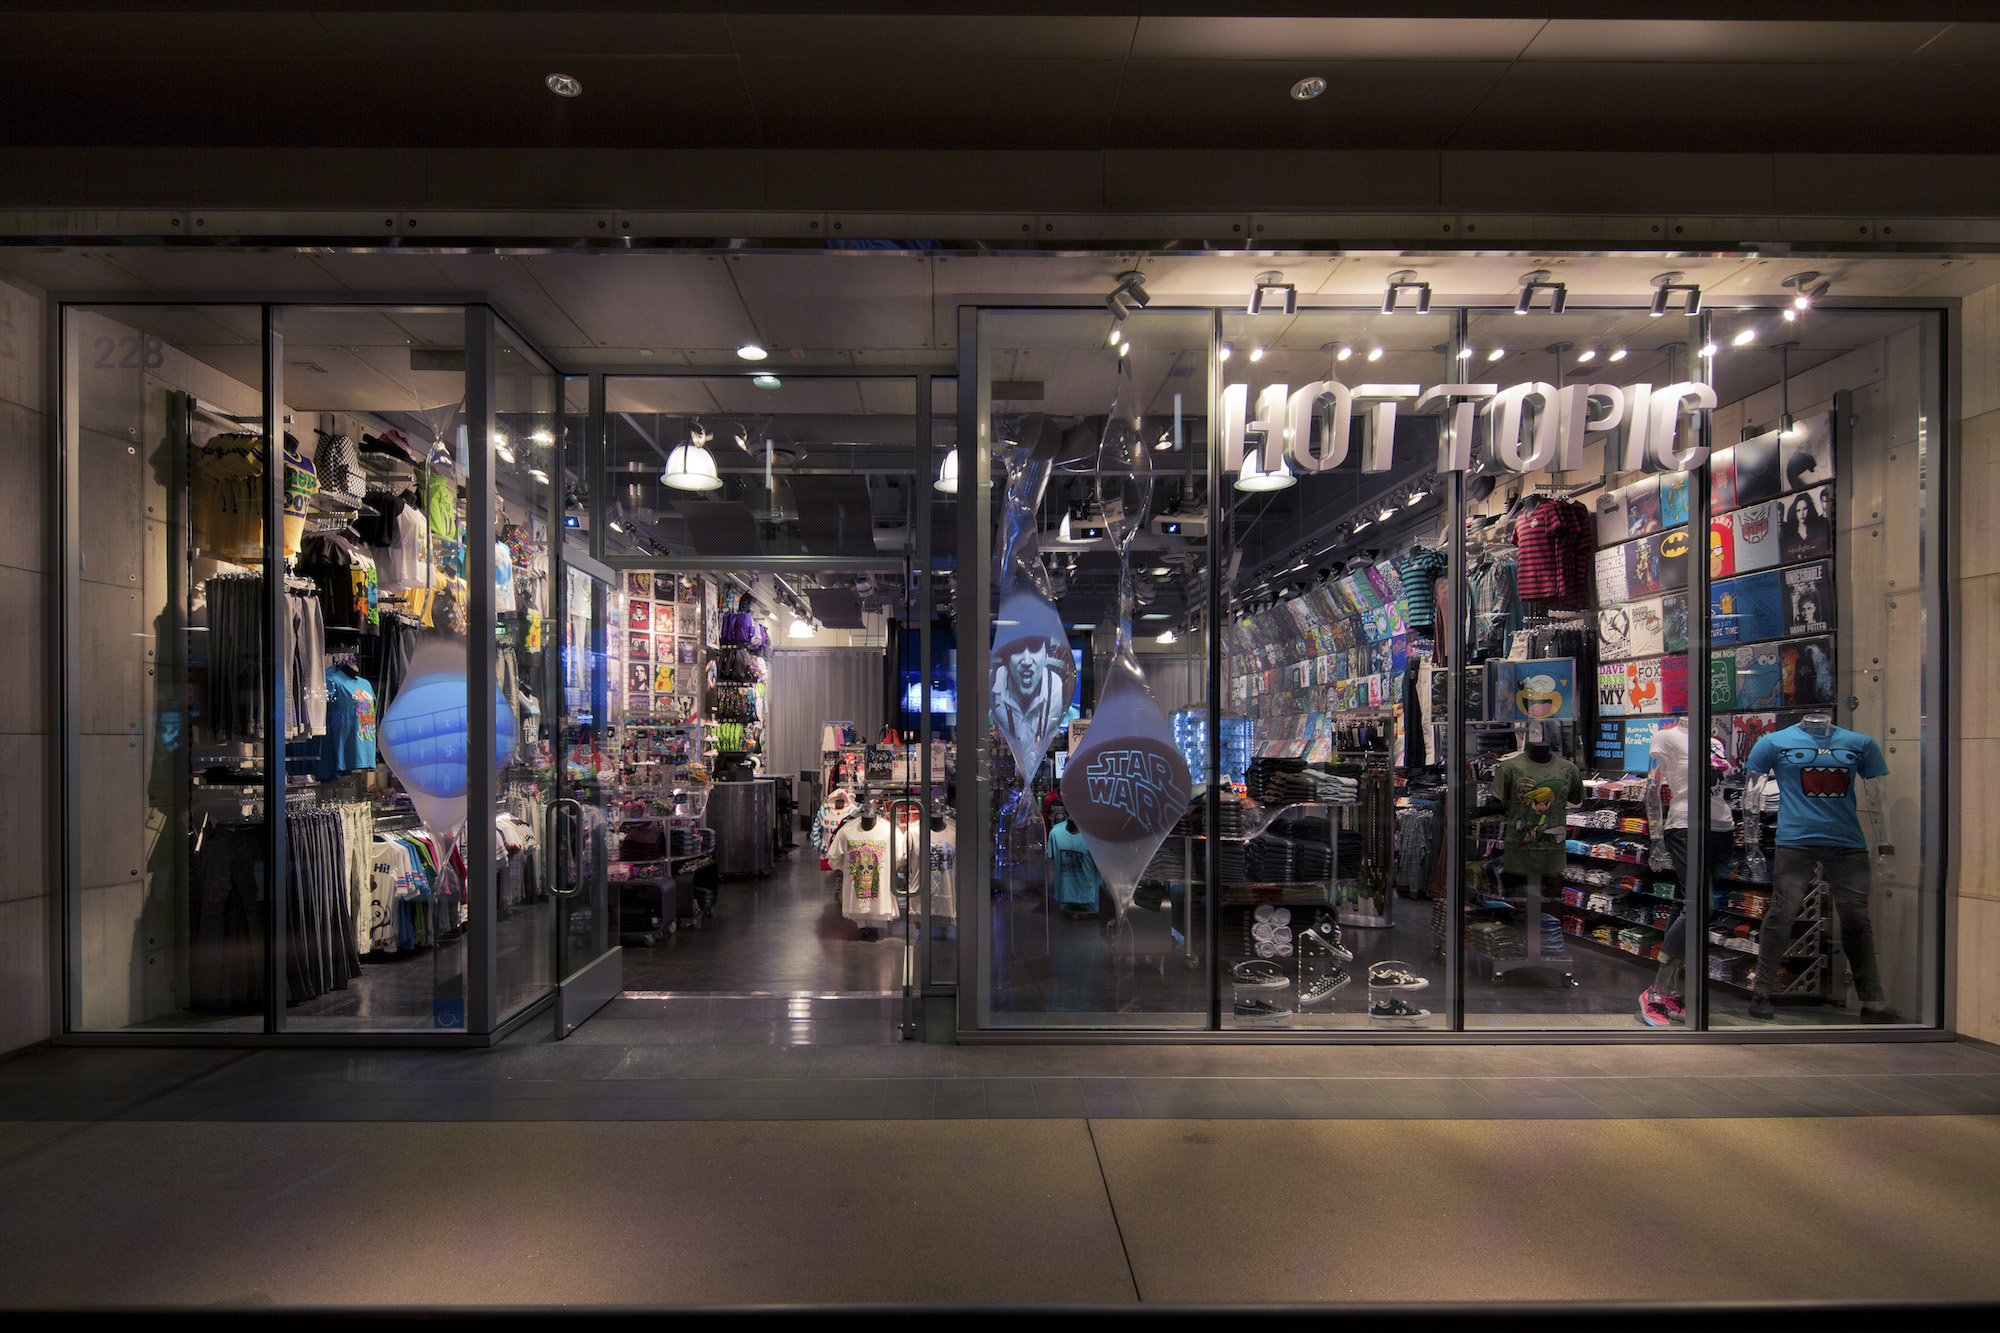 Hot Topic; Santa Monica Place